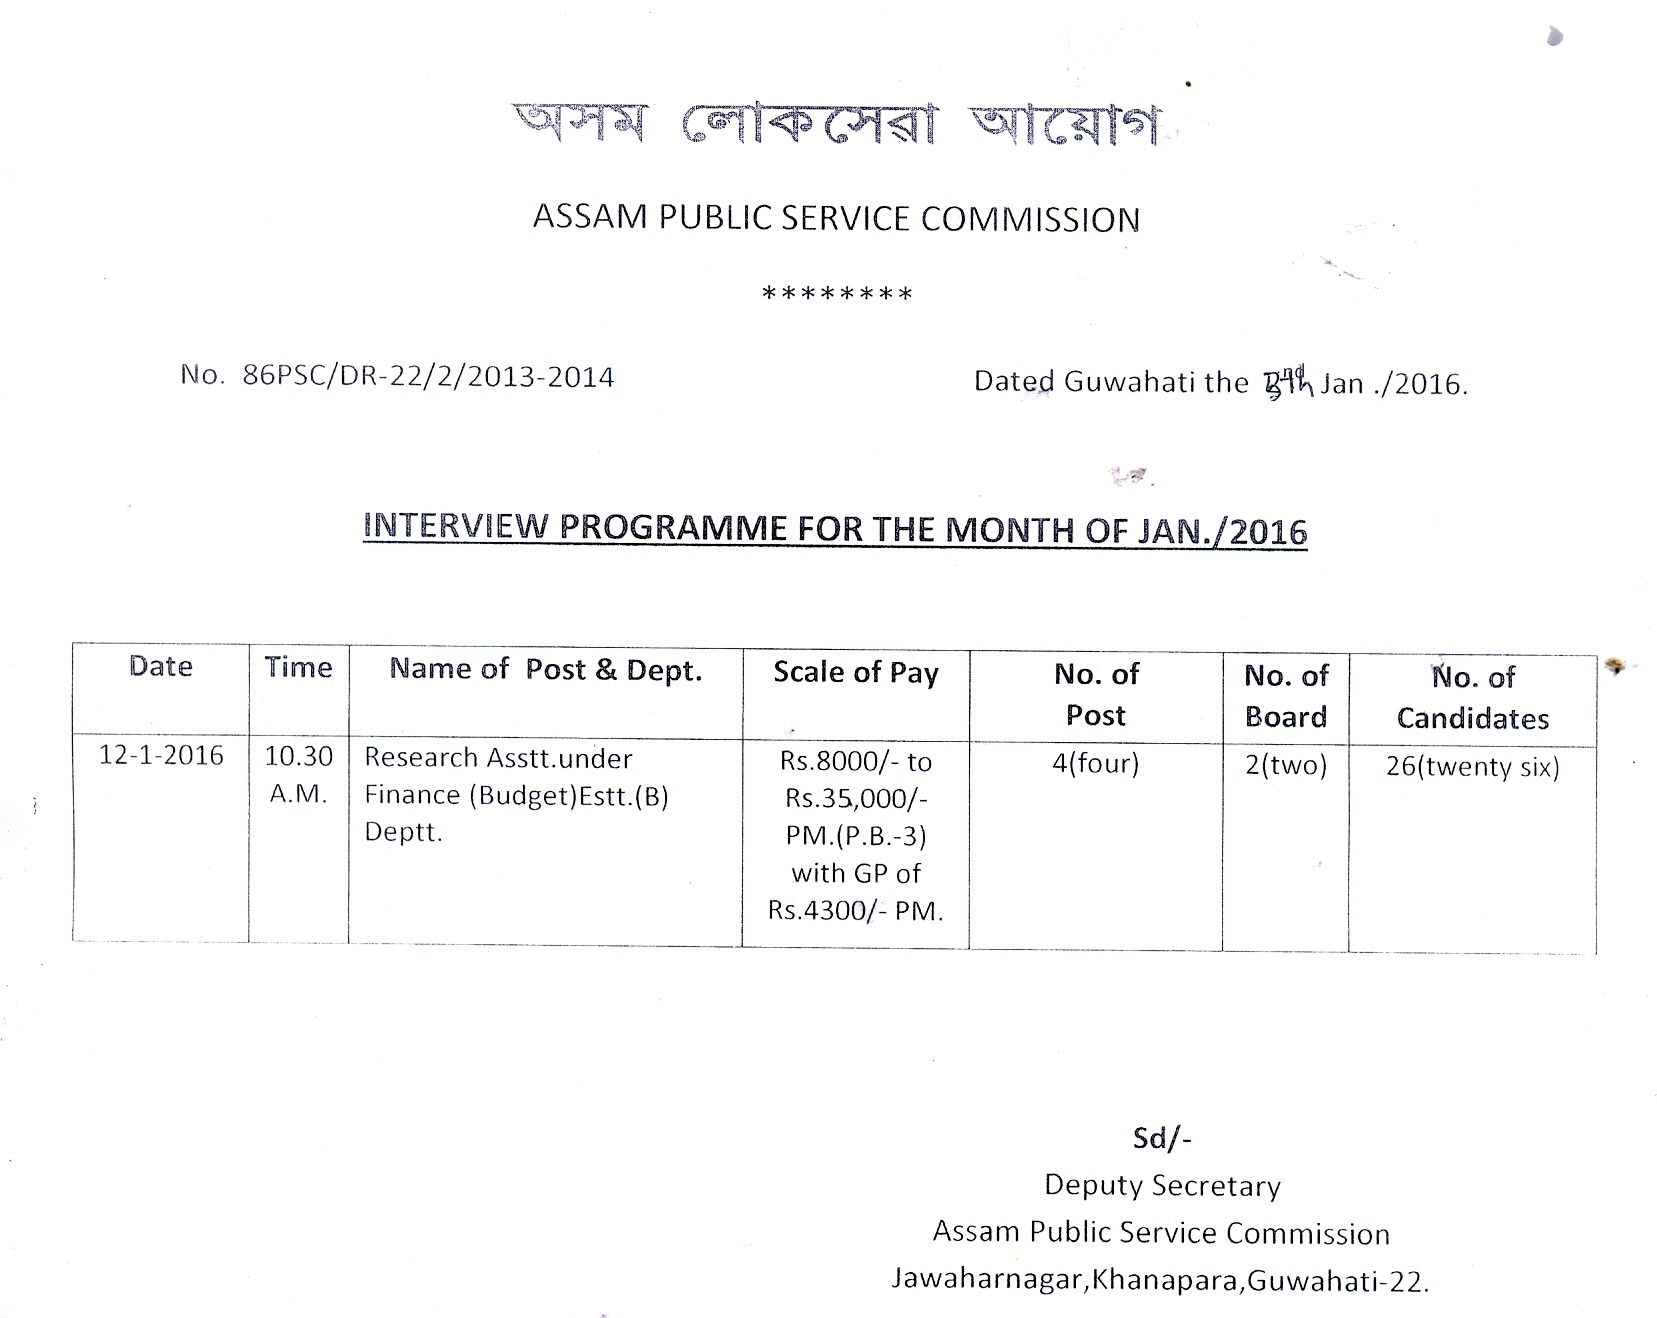 Interview schedule for the post of Research Assistant under Finance  (Budget) Estt. (B) Department